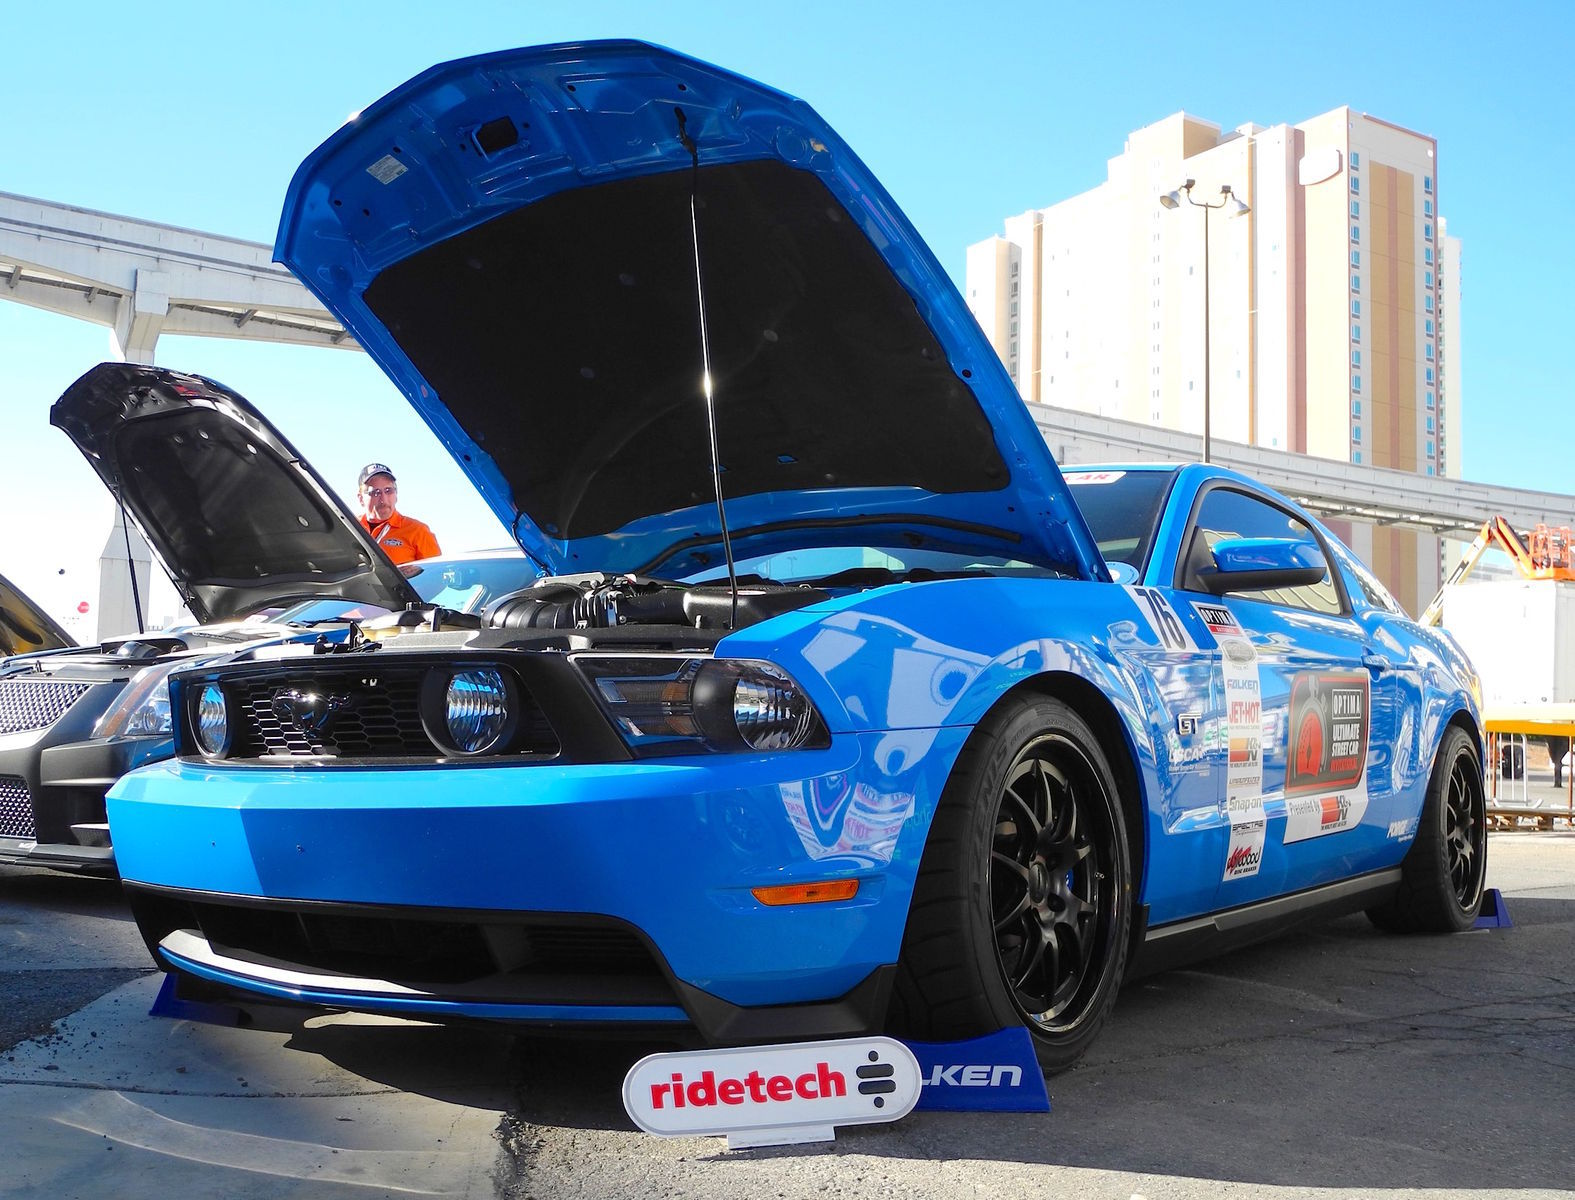 2010 Ford Mustang | Saroja Raman's Grabber Blue S197 Mustang GT on Forgeline GA3 Wheels - Front Angle Shot